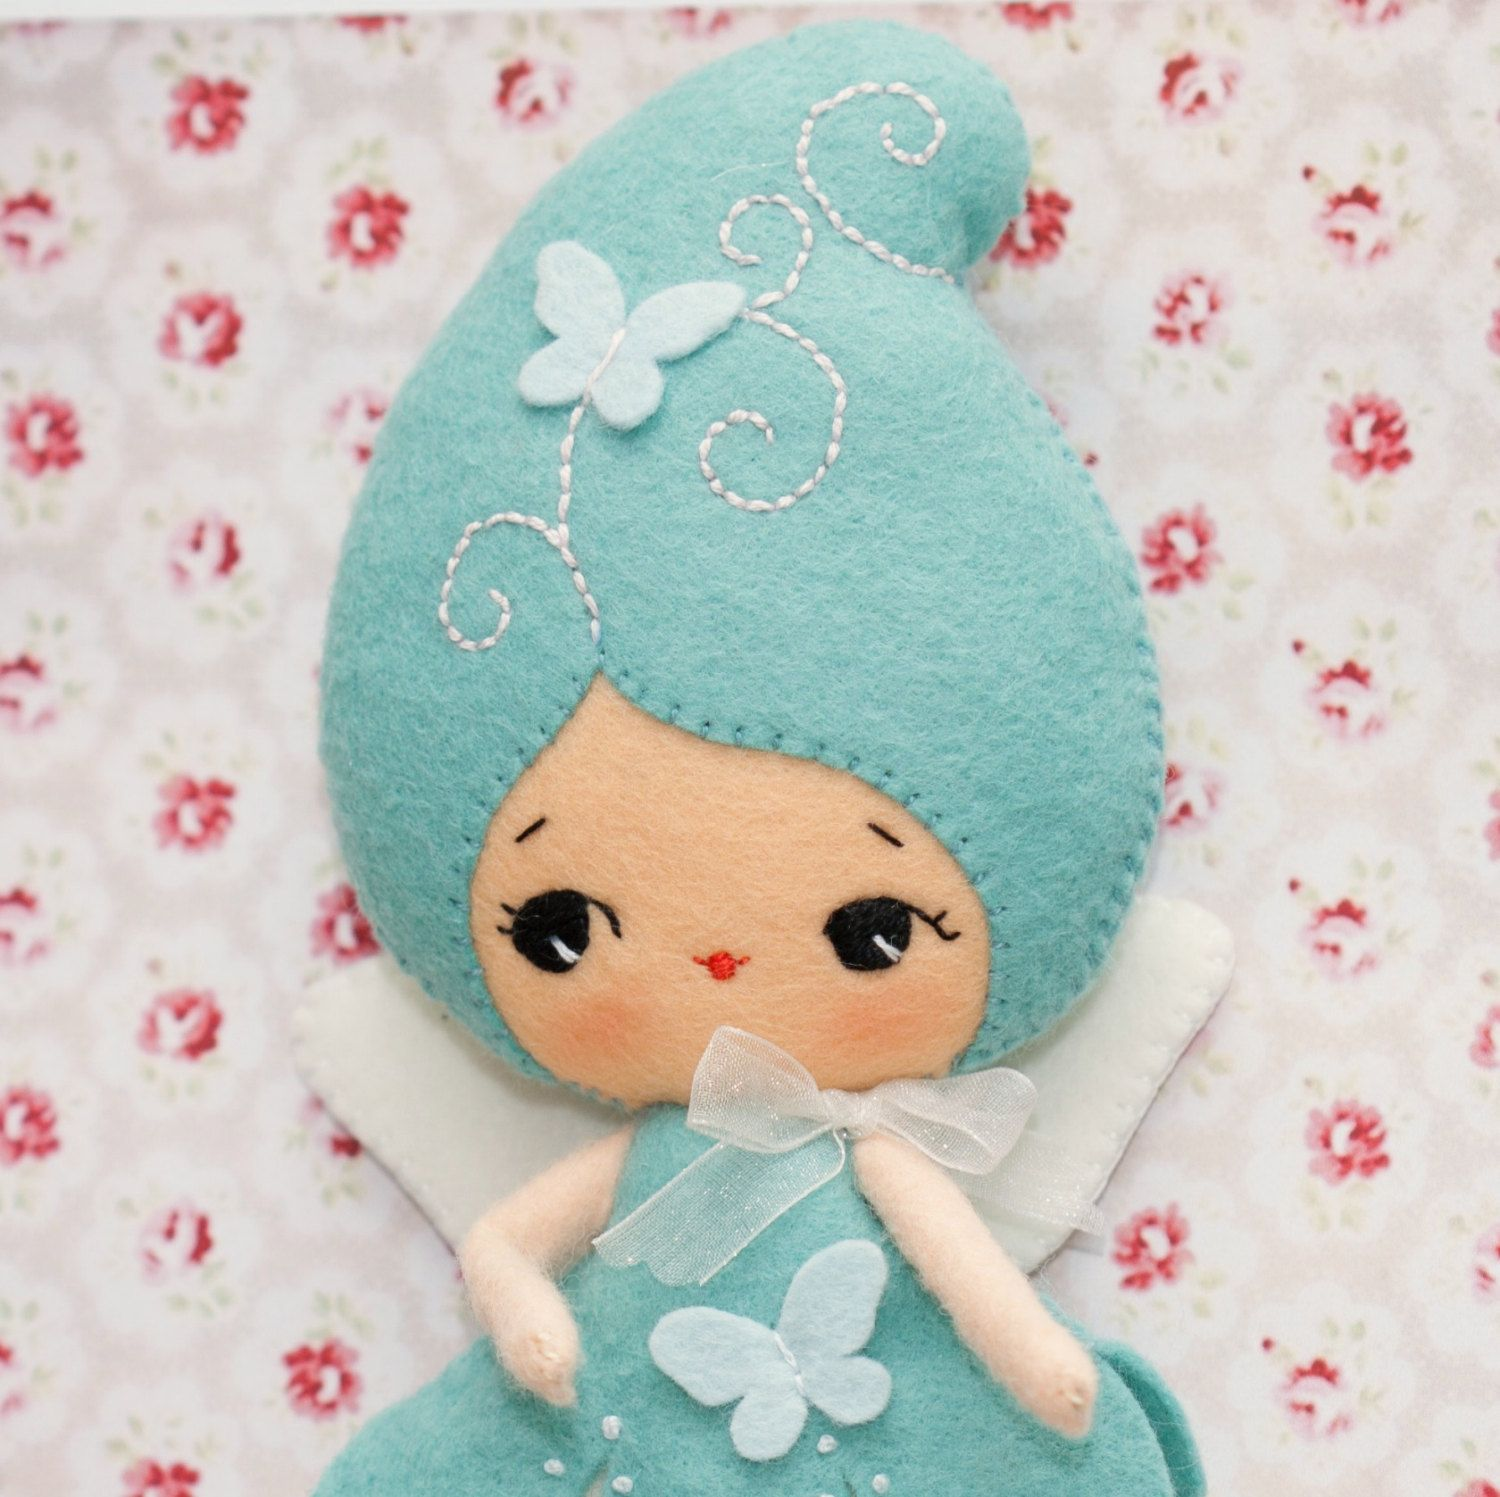 PDF. Blue fairy doll. Plush Doll Pattern, Softie Pattern, Soft felt ...